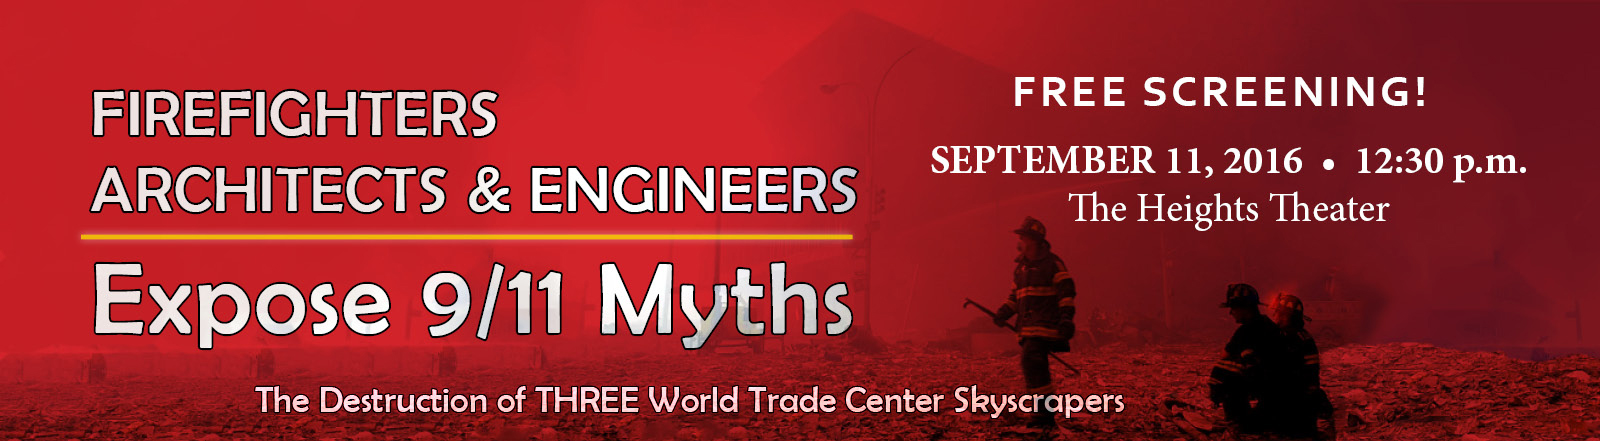 movie-banner-cropped